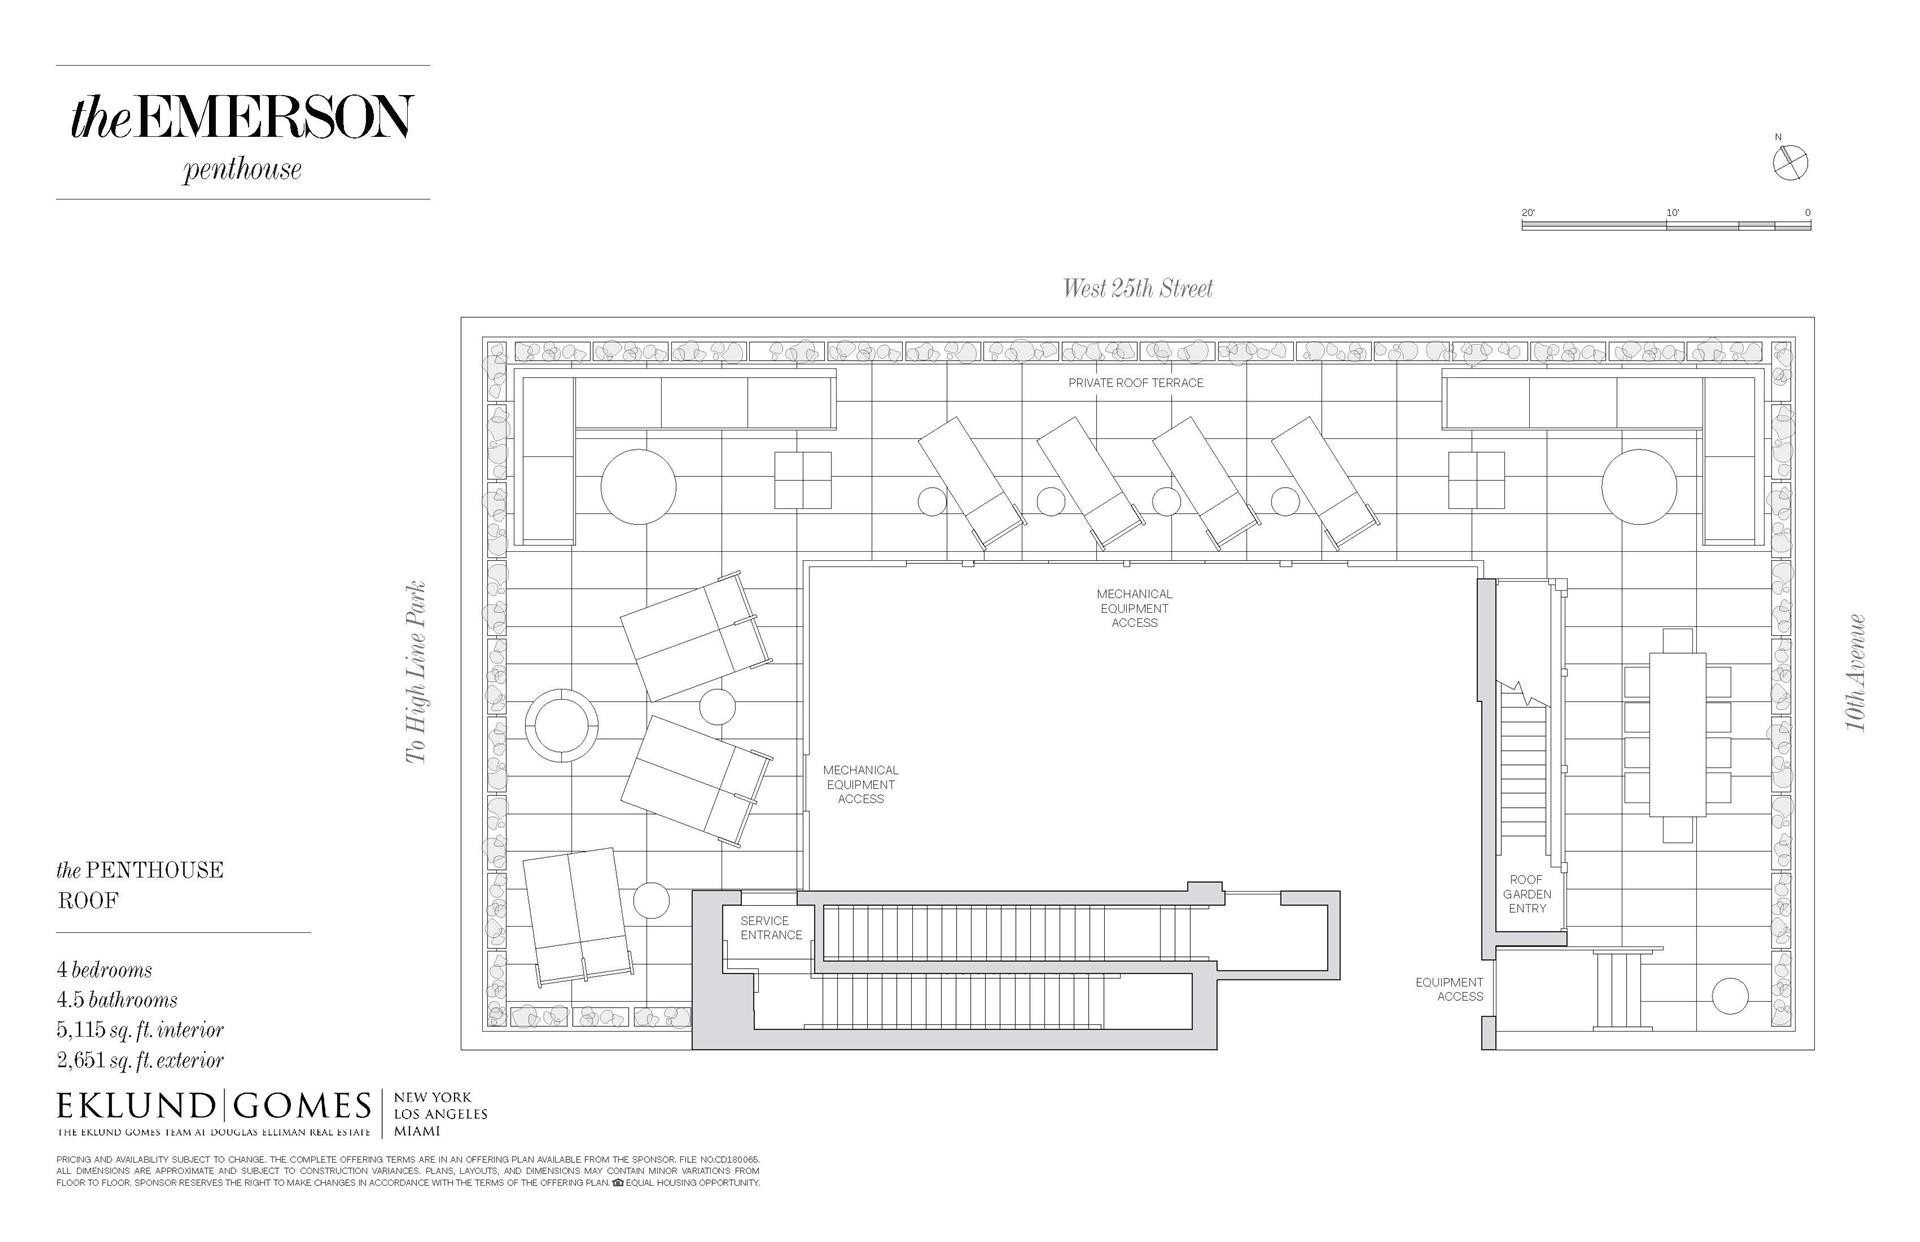 3. Condominiums for Sale at 500 W 25TH ST , PH Chelsea, New York, NY 10001